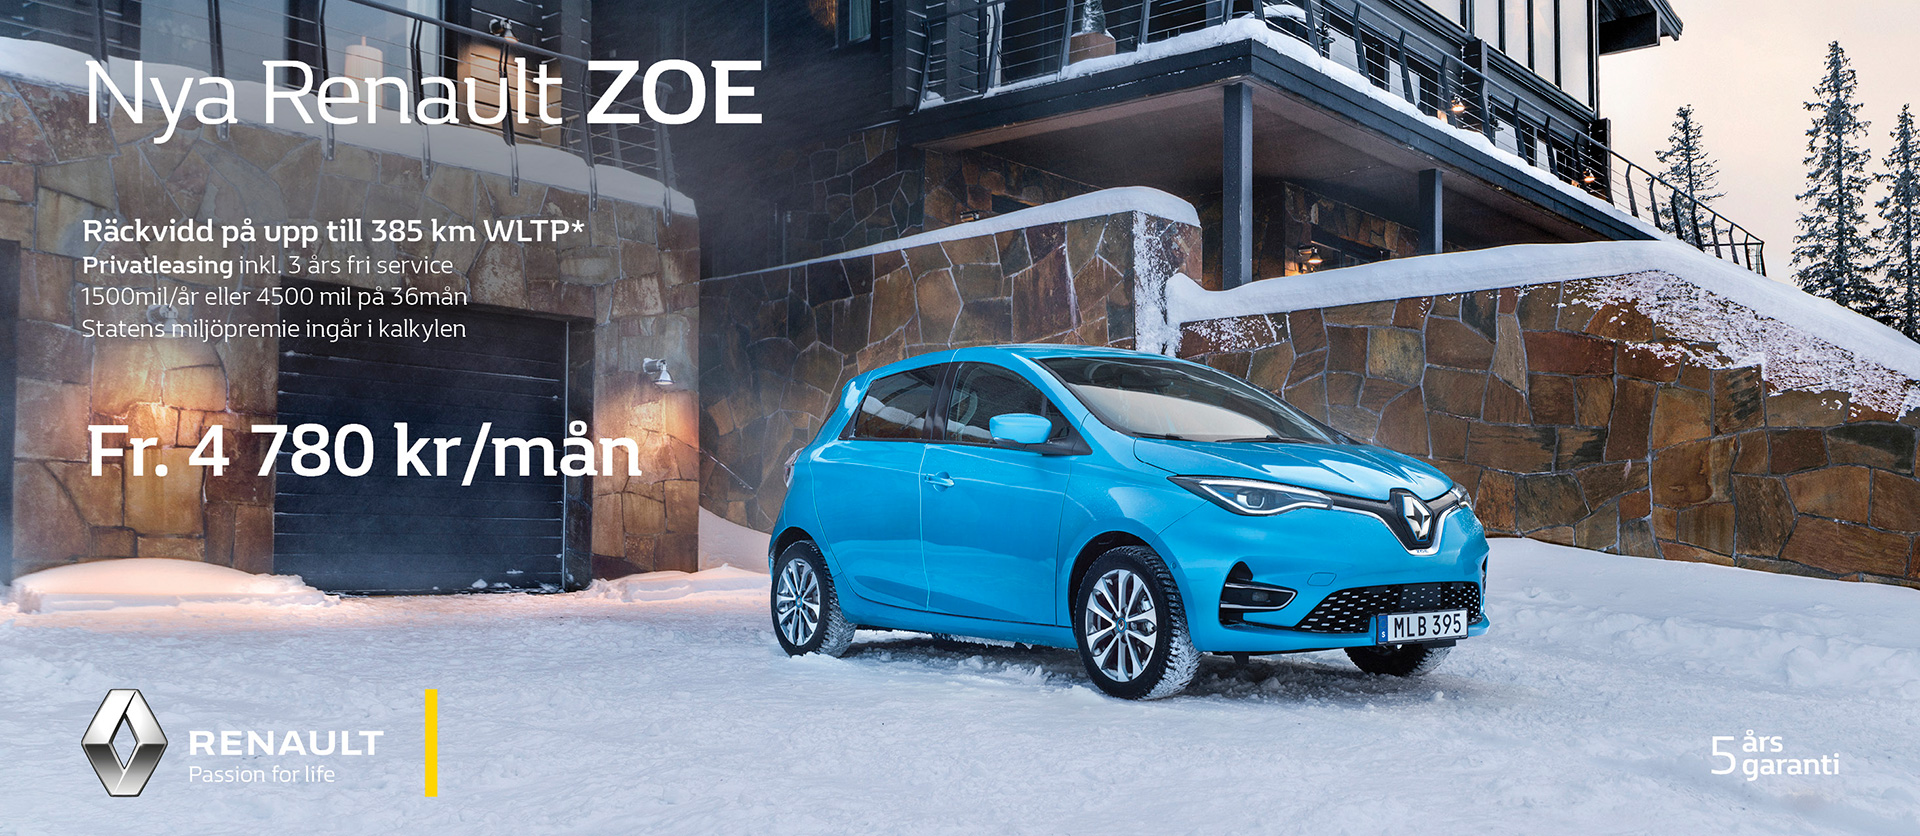 Privatleasing nya Renault Zoe